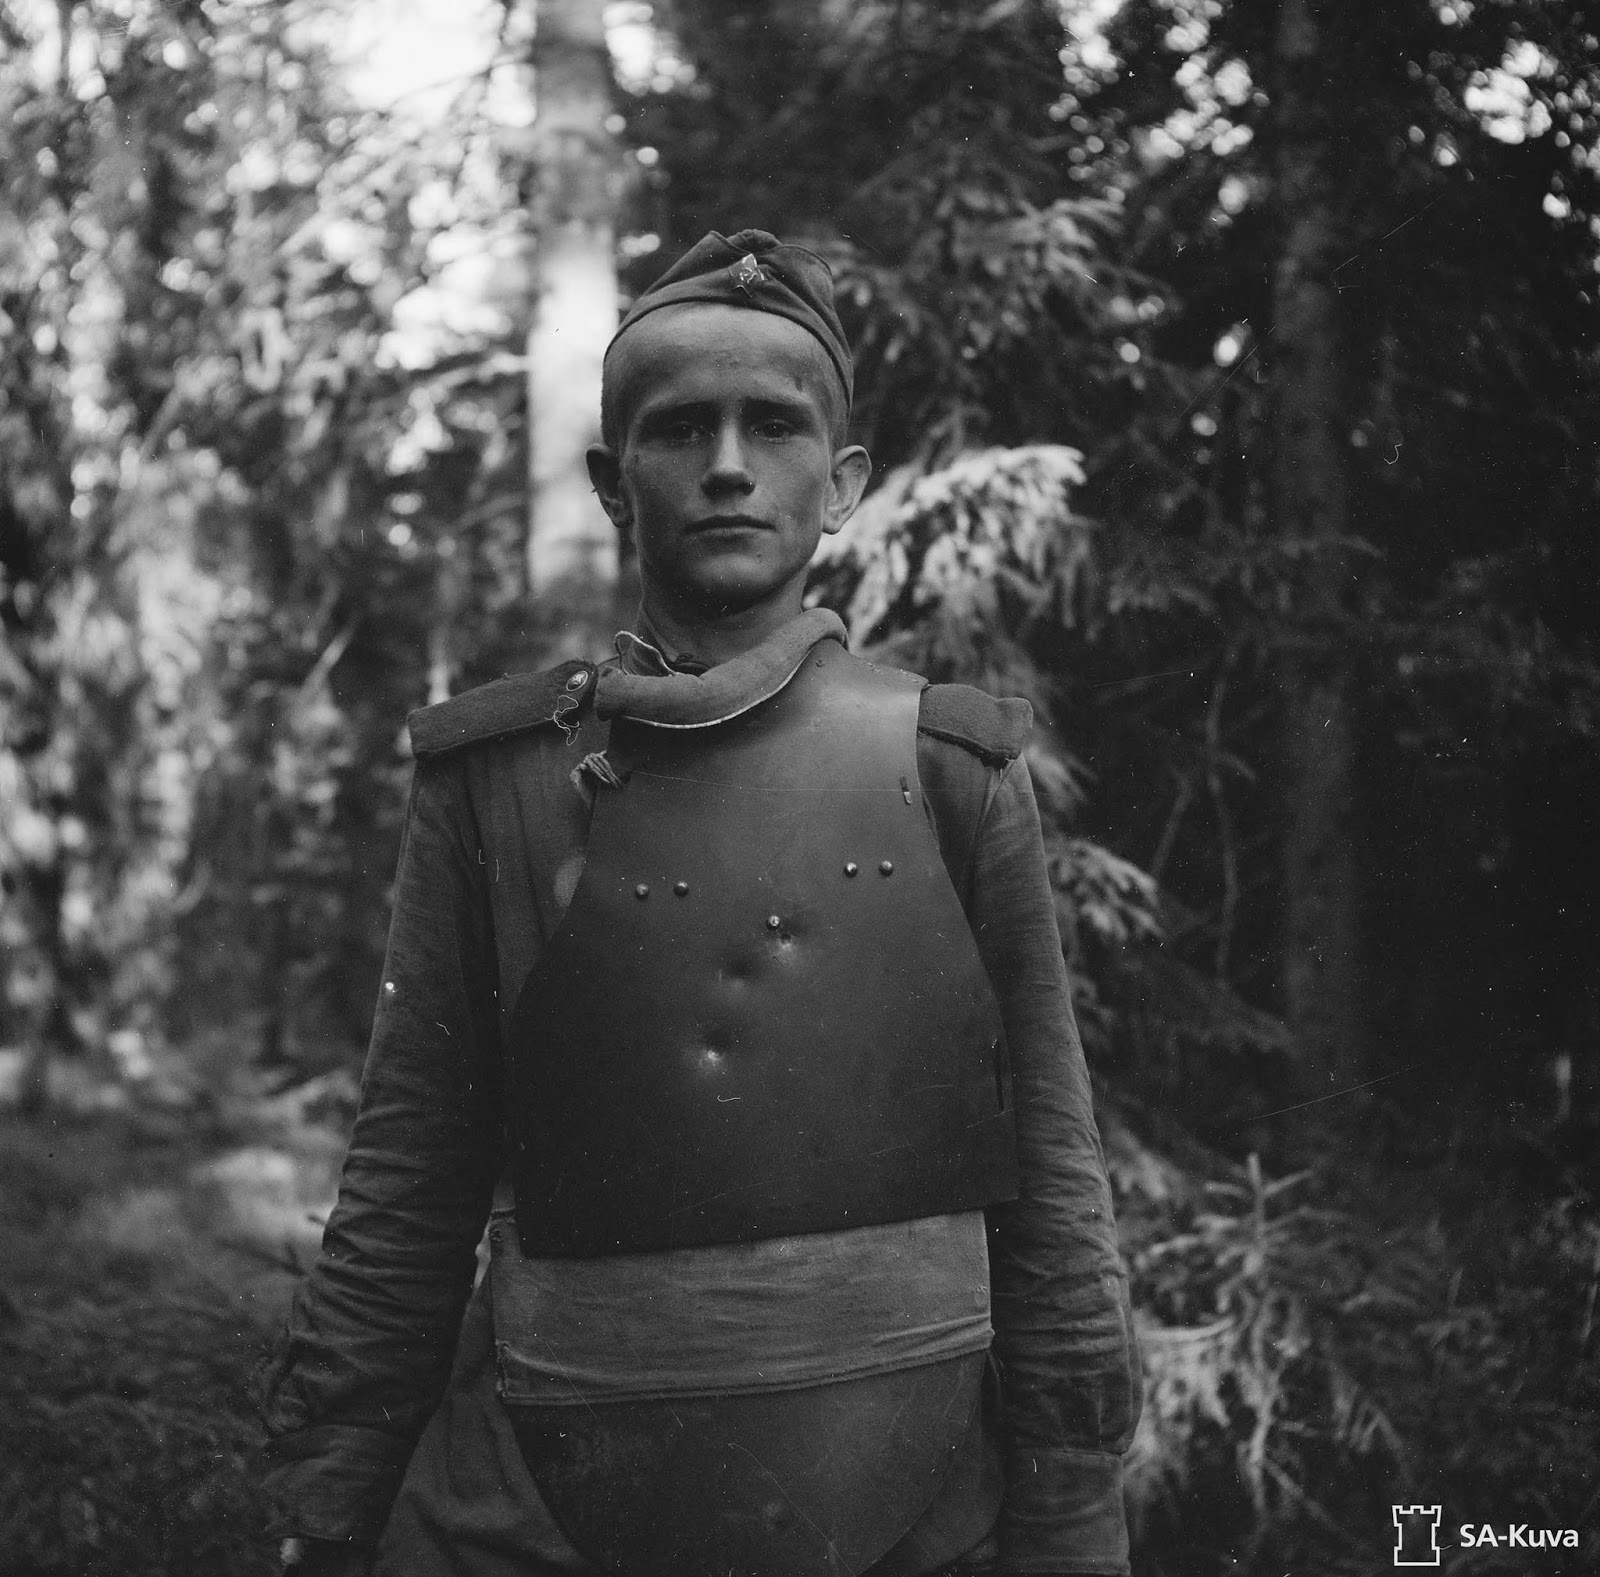 Captured Soviet soldier dressed in SN-42 body armor. Karelia, 1944.